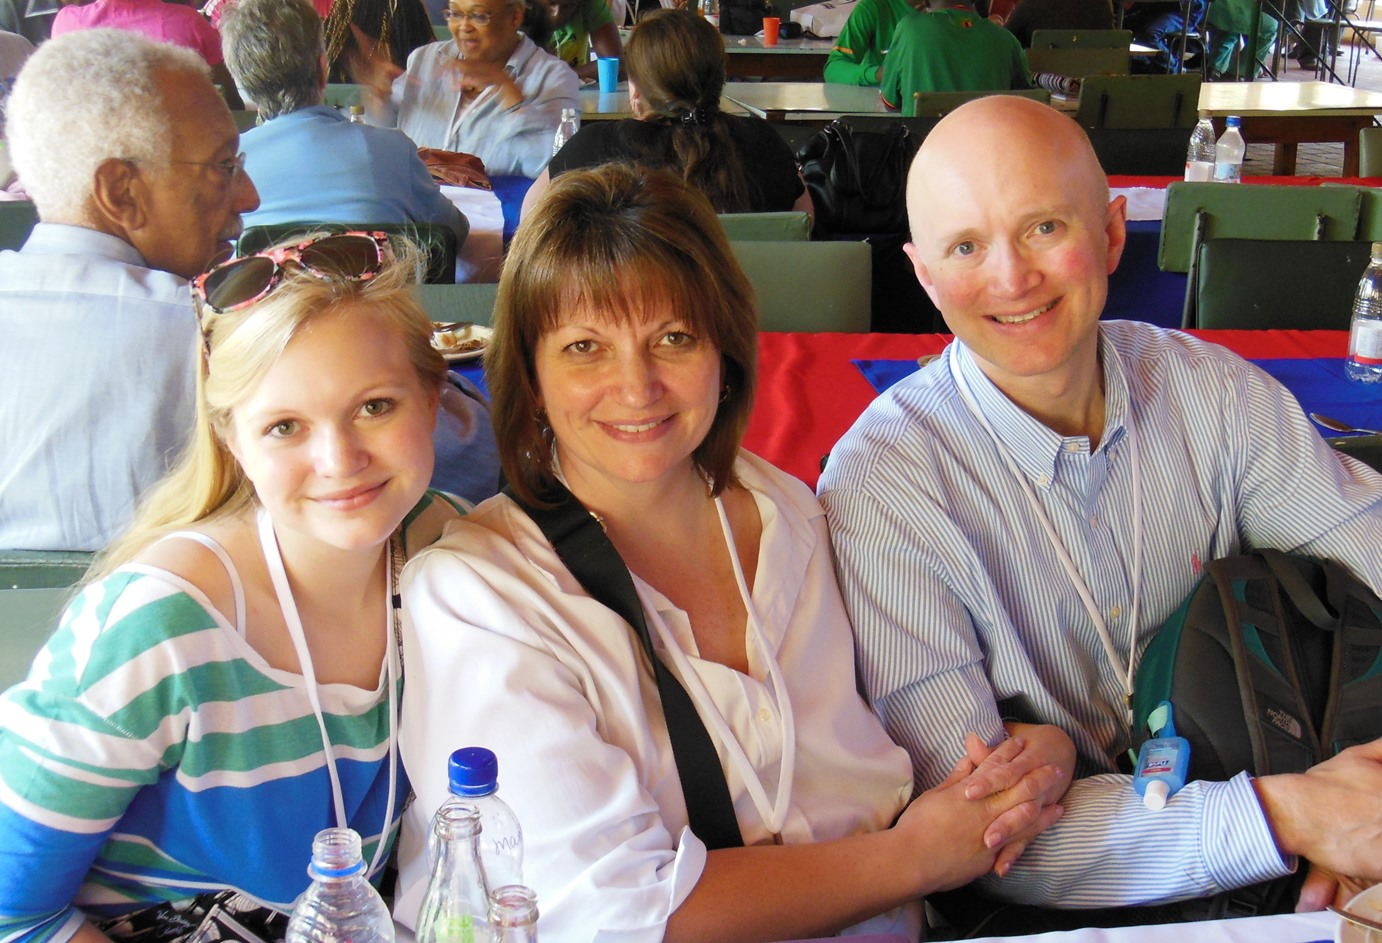 Georgianna Wood and her parents, Greg and Mimi Wood, during their visit to Africa University/Zimbabwe.